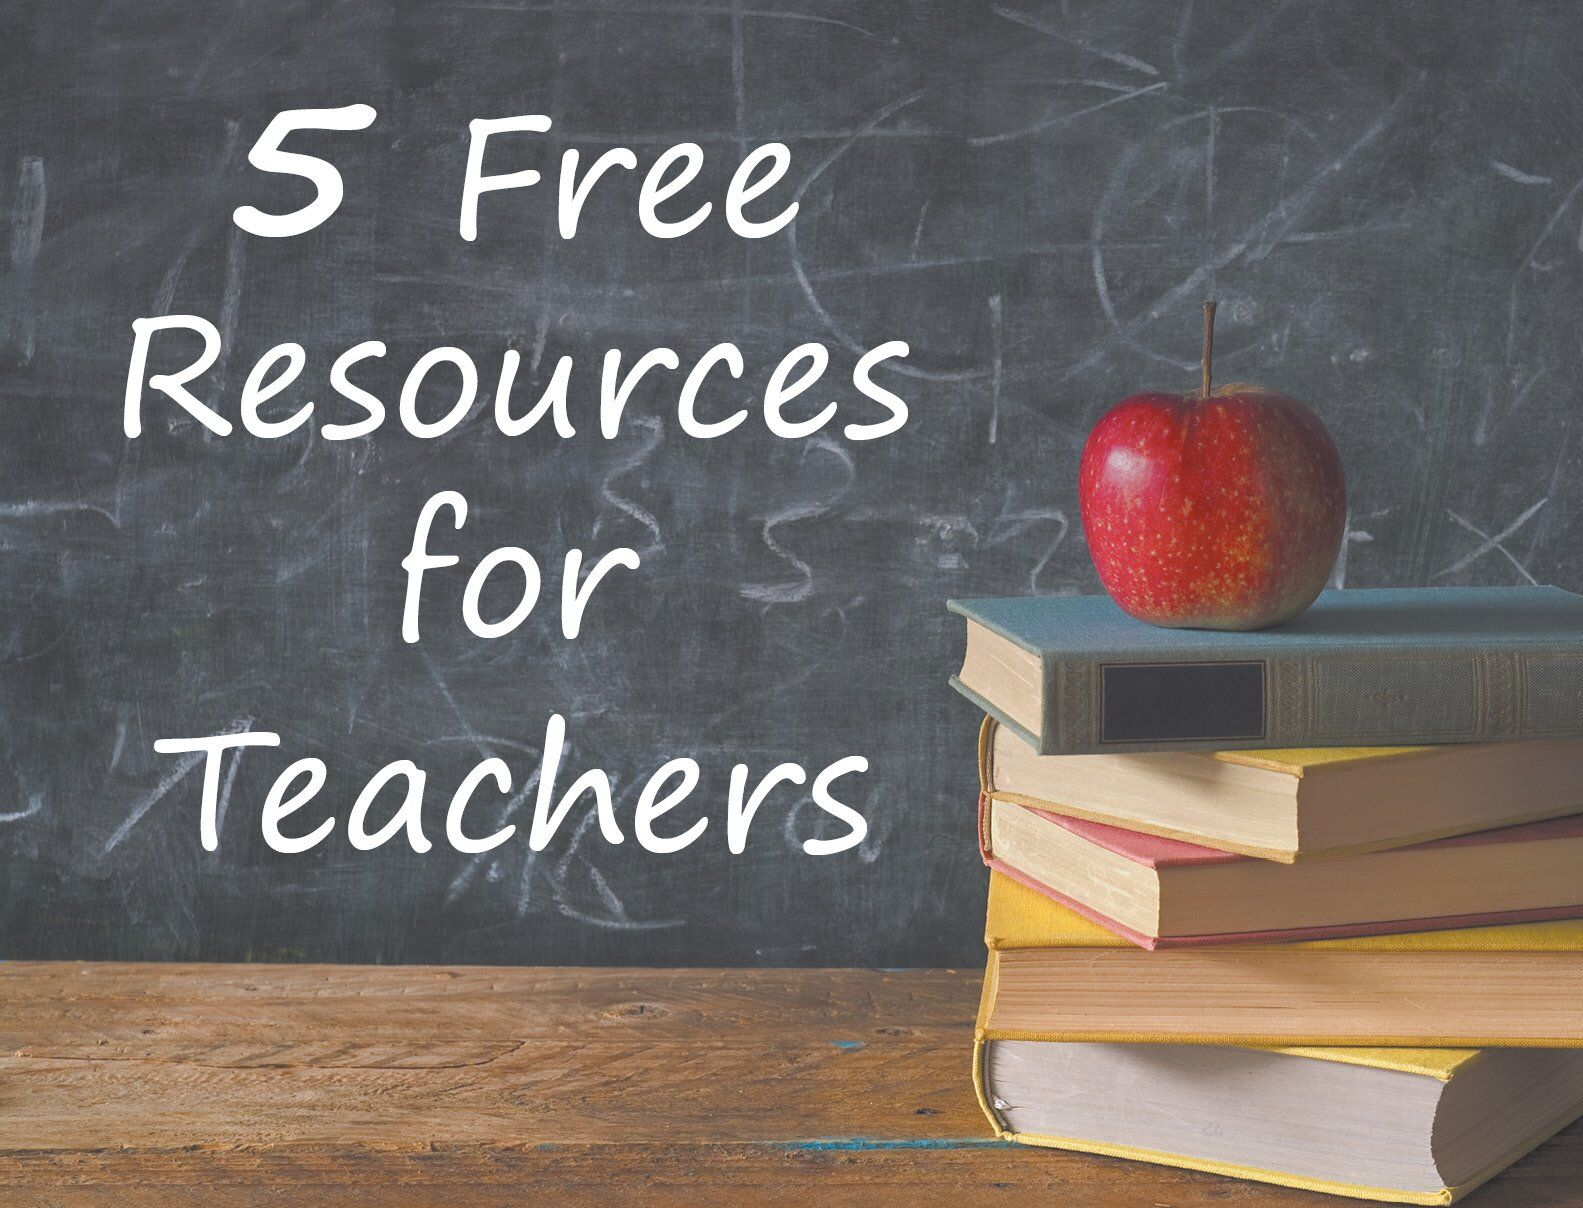 5 Free Resources For Teachers With Images